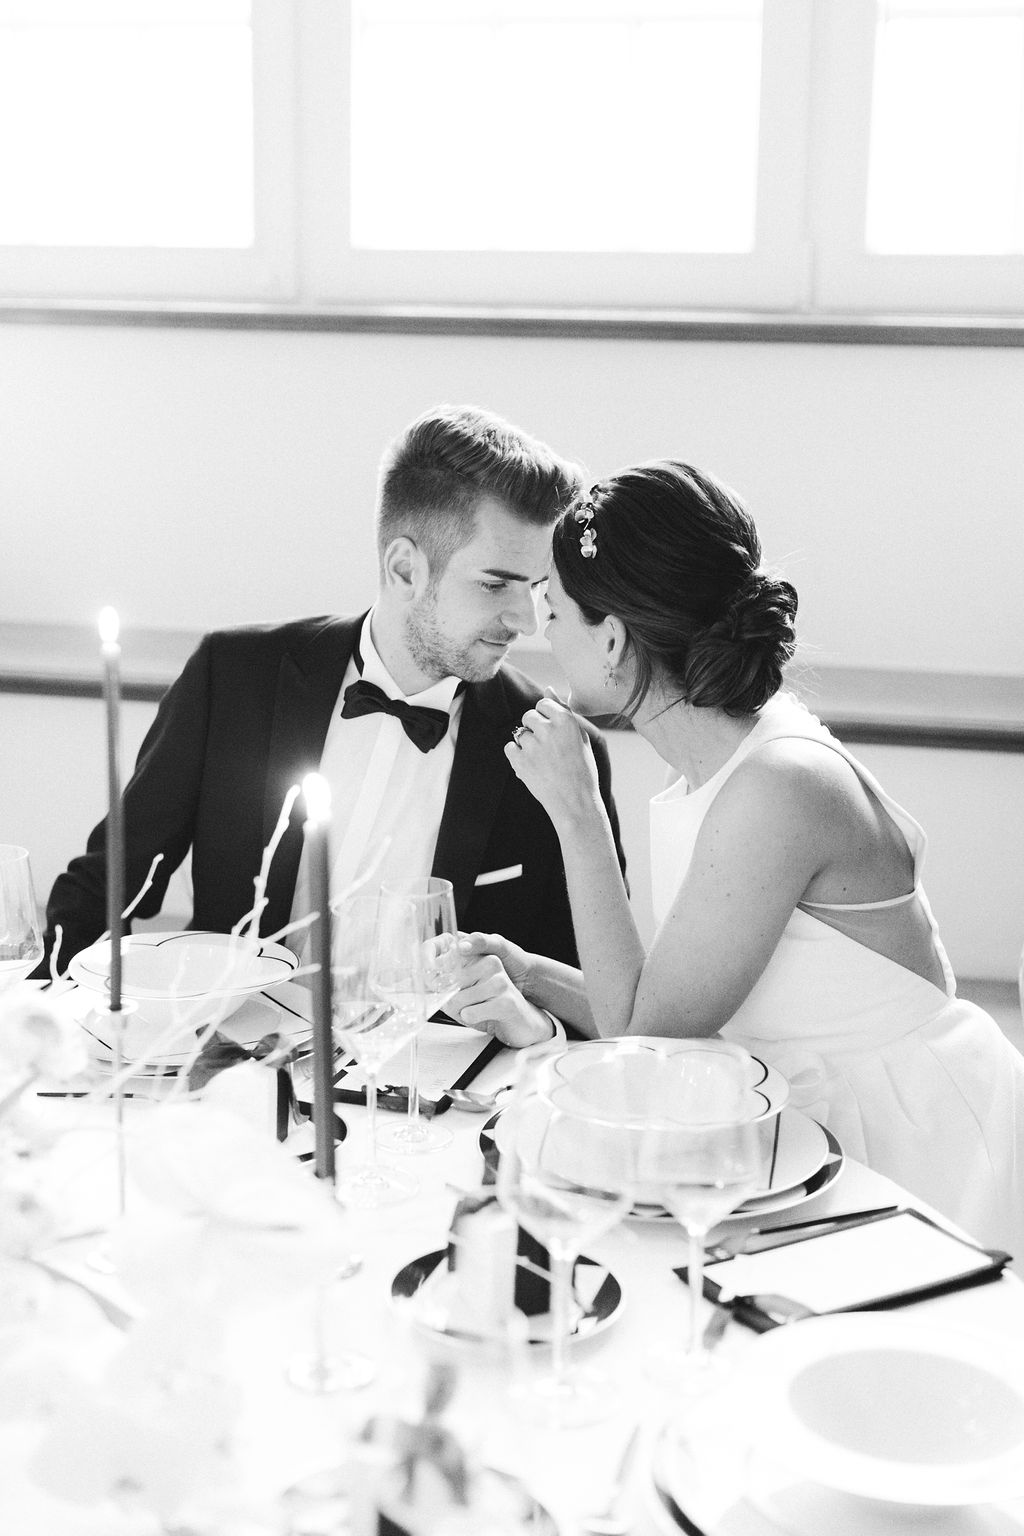 kloster-woeltingerode-black-white-wedding-couple-3